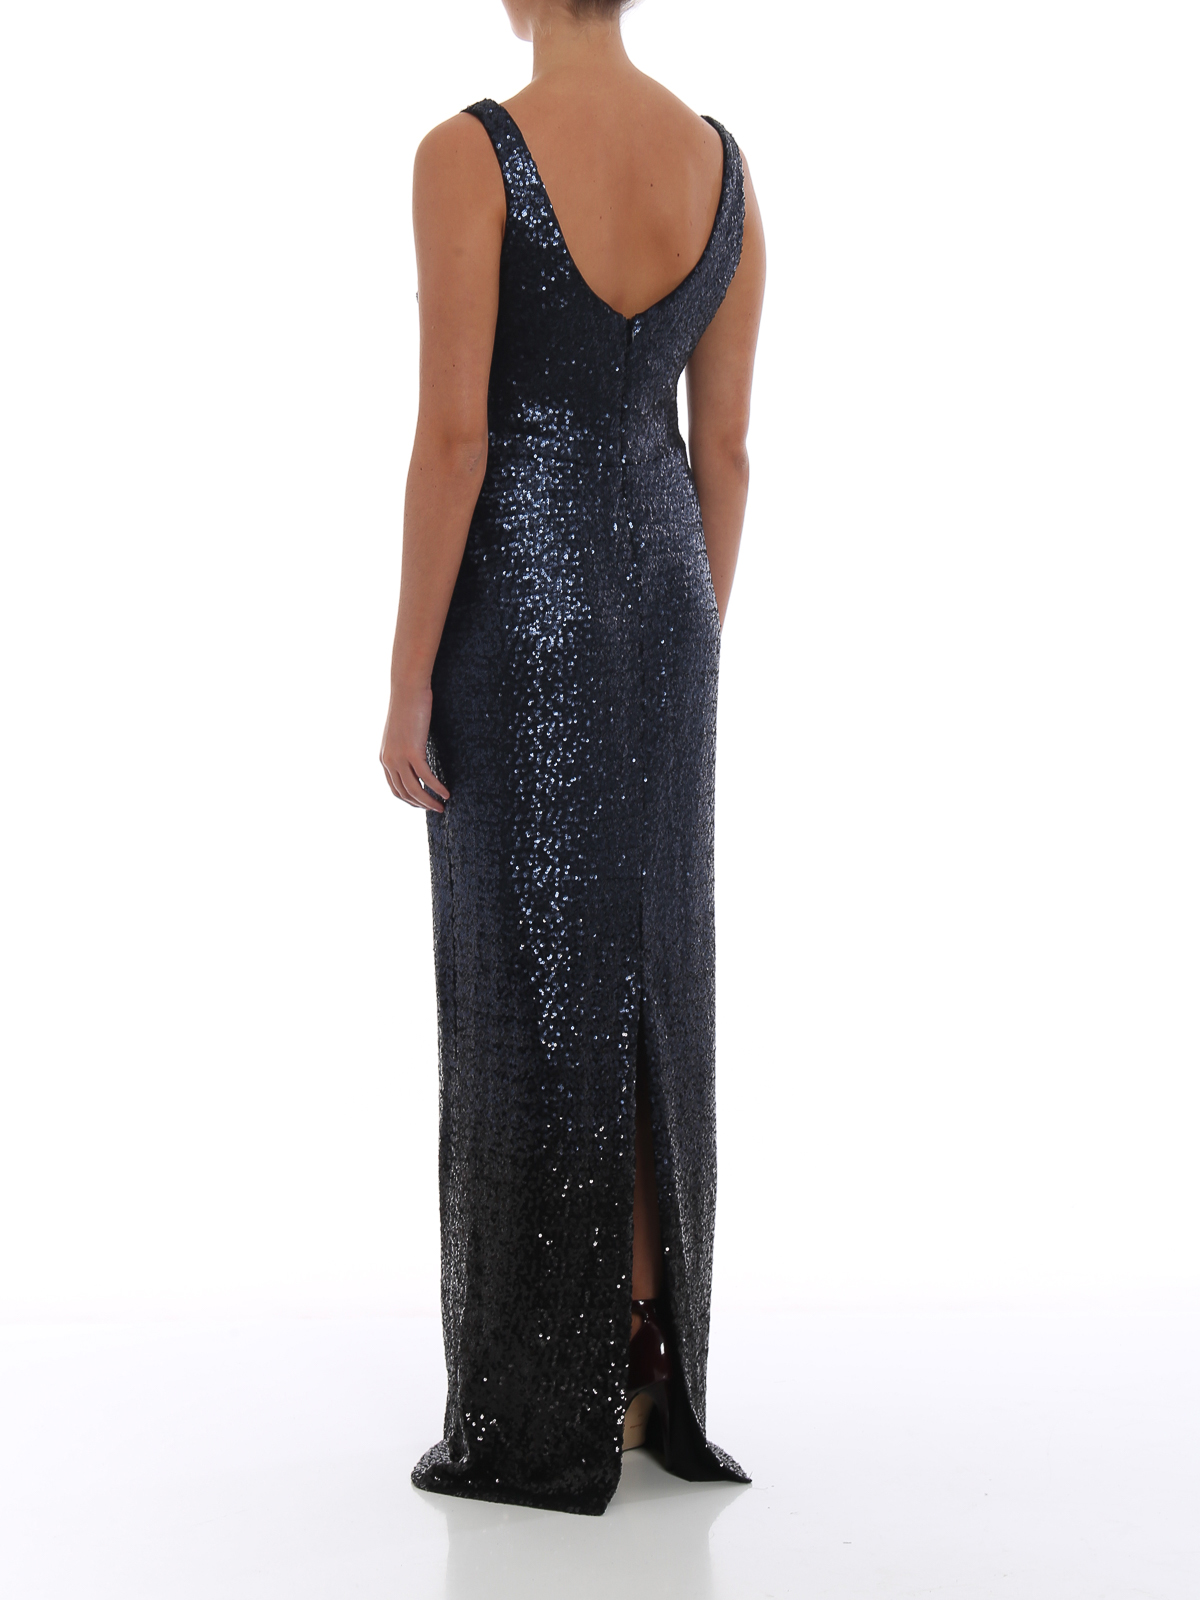 fb02ba6d Ralph Lauren - Black and blue sequin sleeveless gown - evening ...